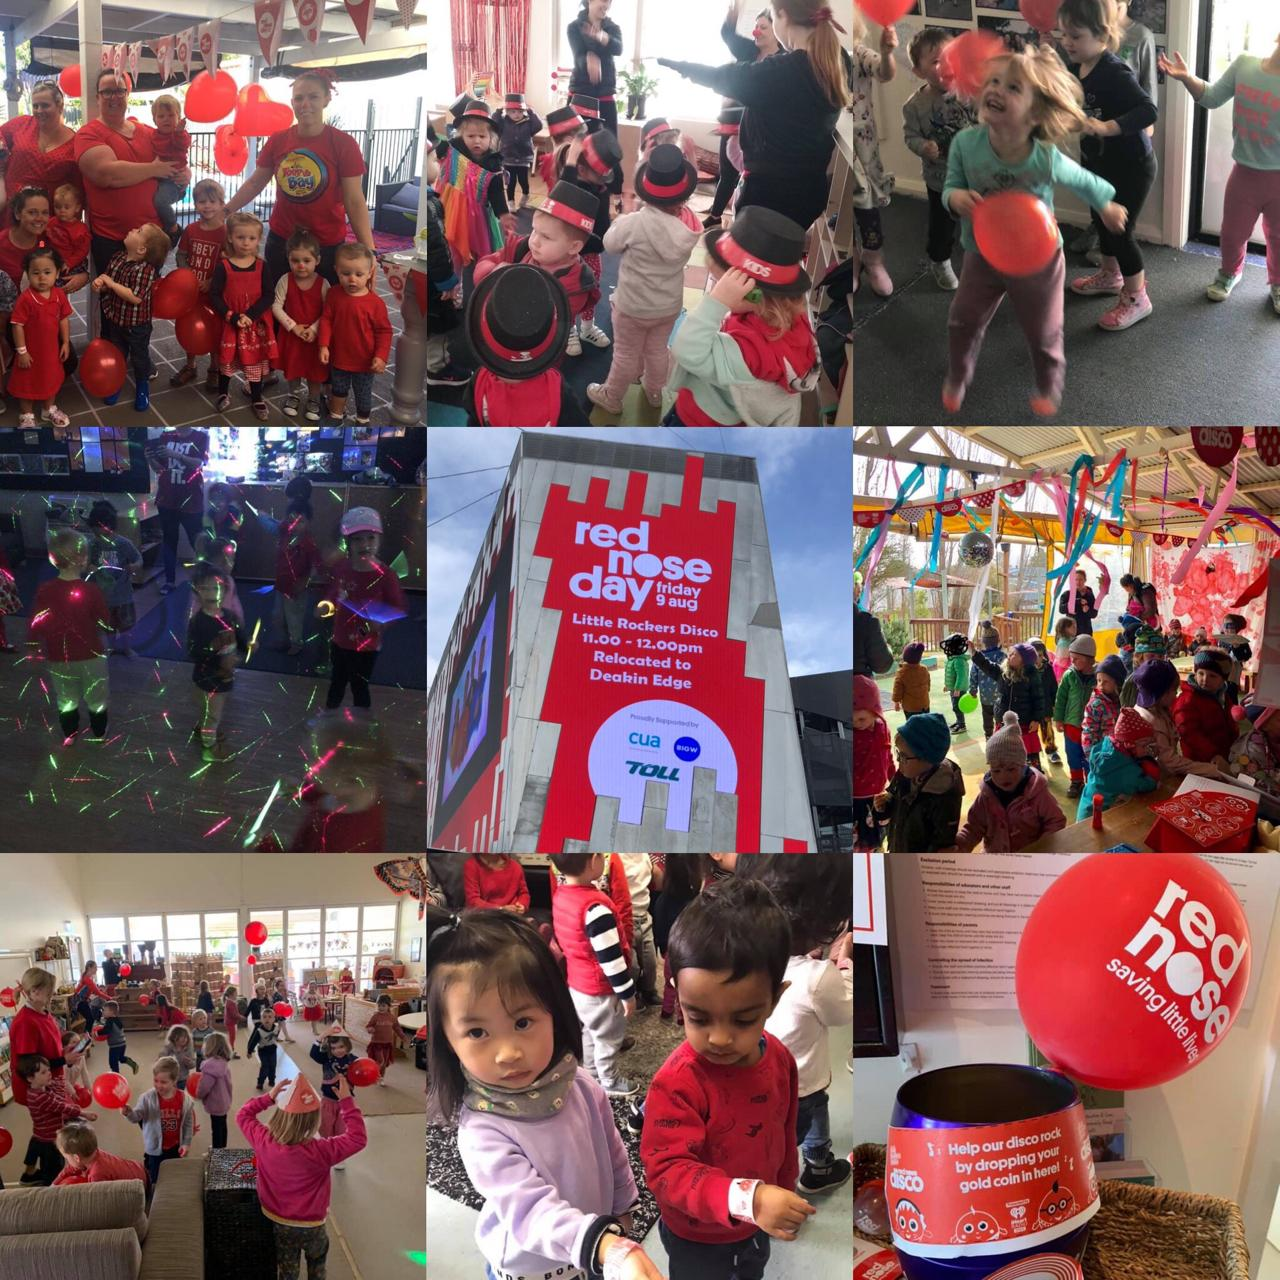 The Kids danced and had fun at the 2019 Little Rockers Radio Red Nose Disco